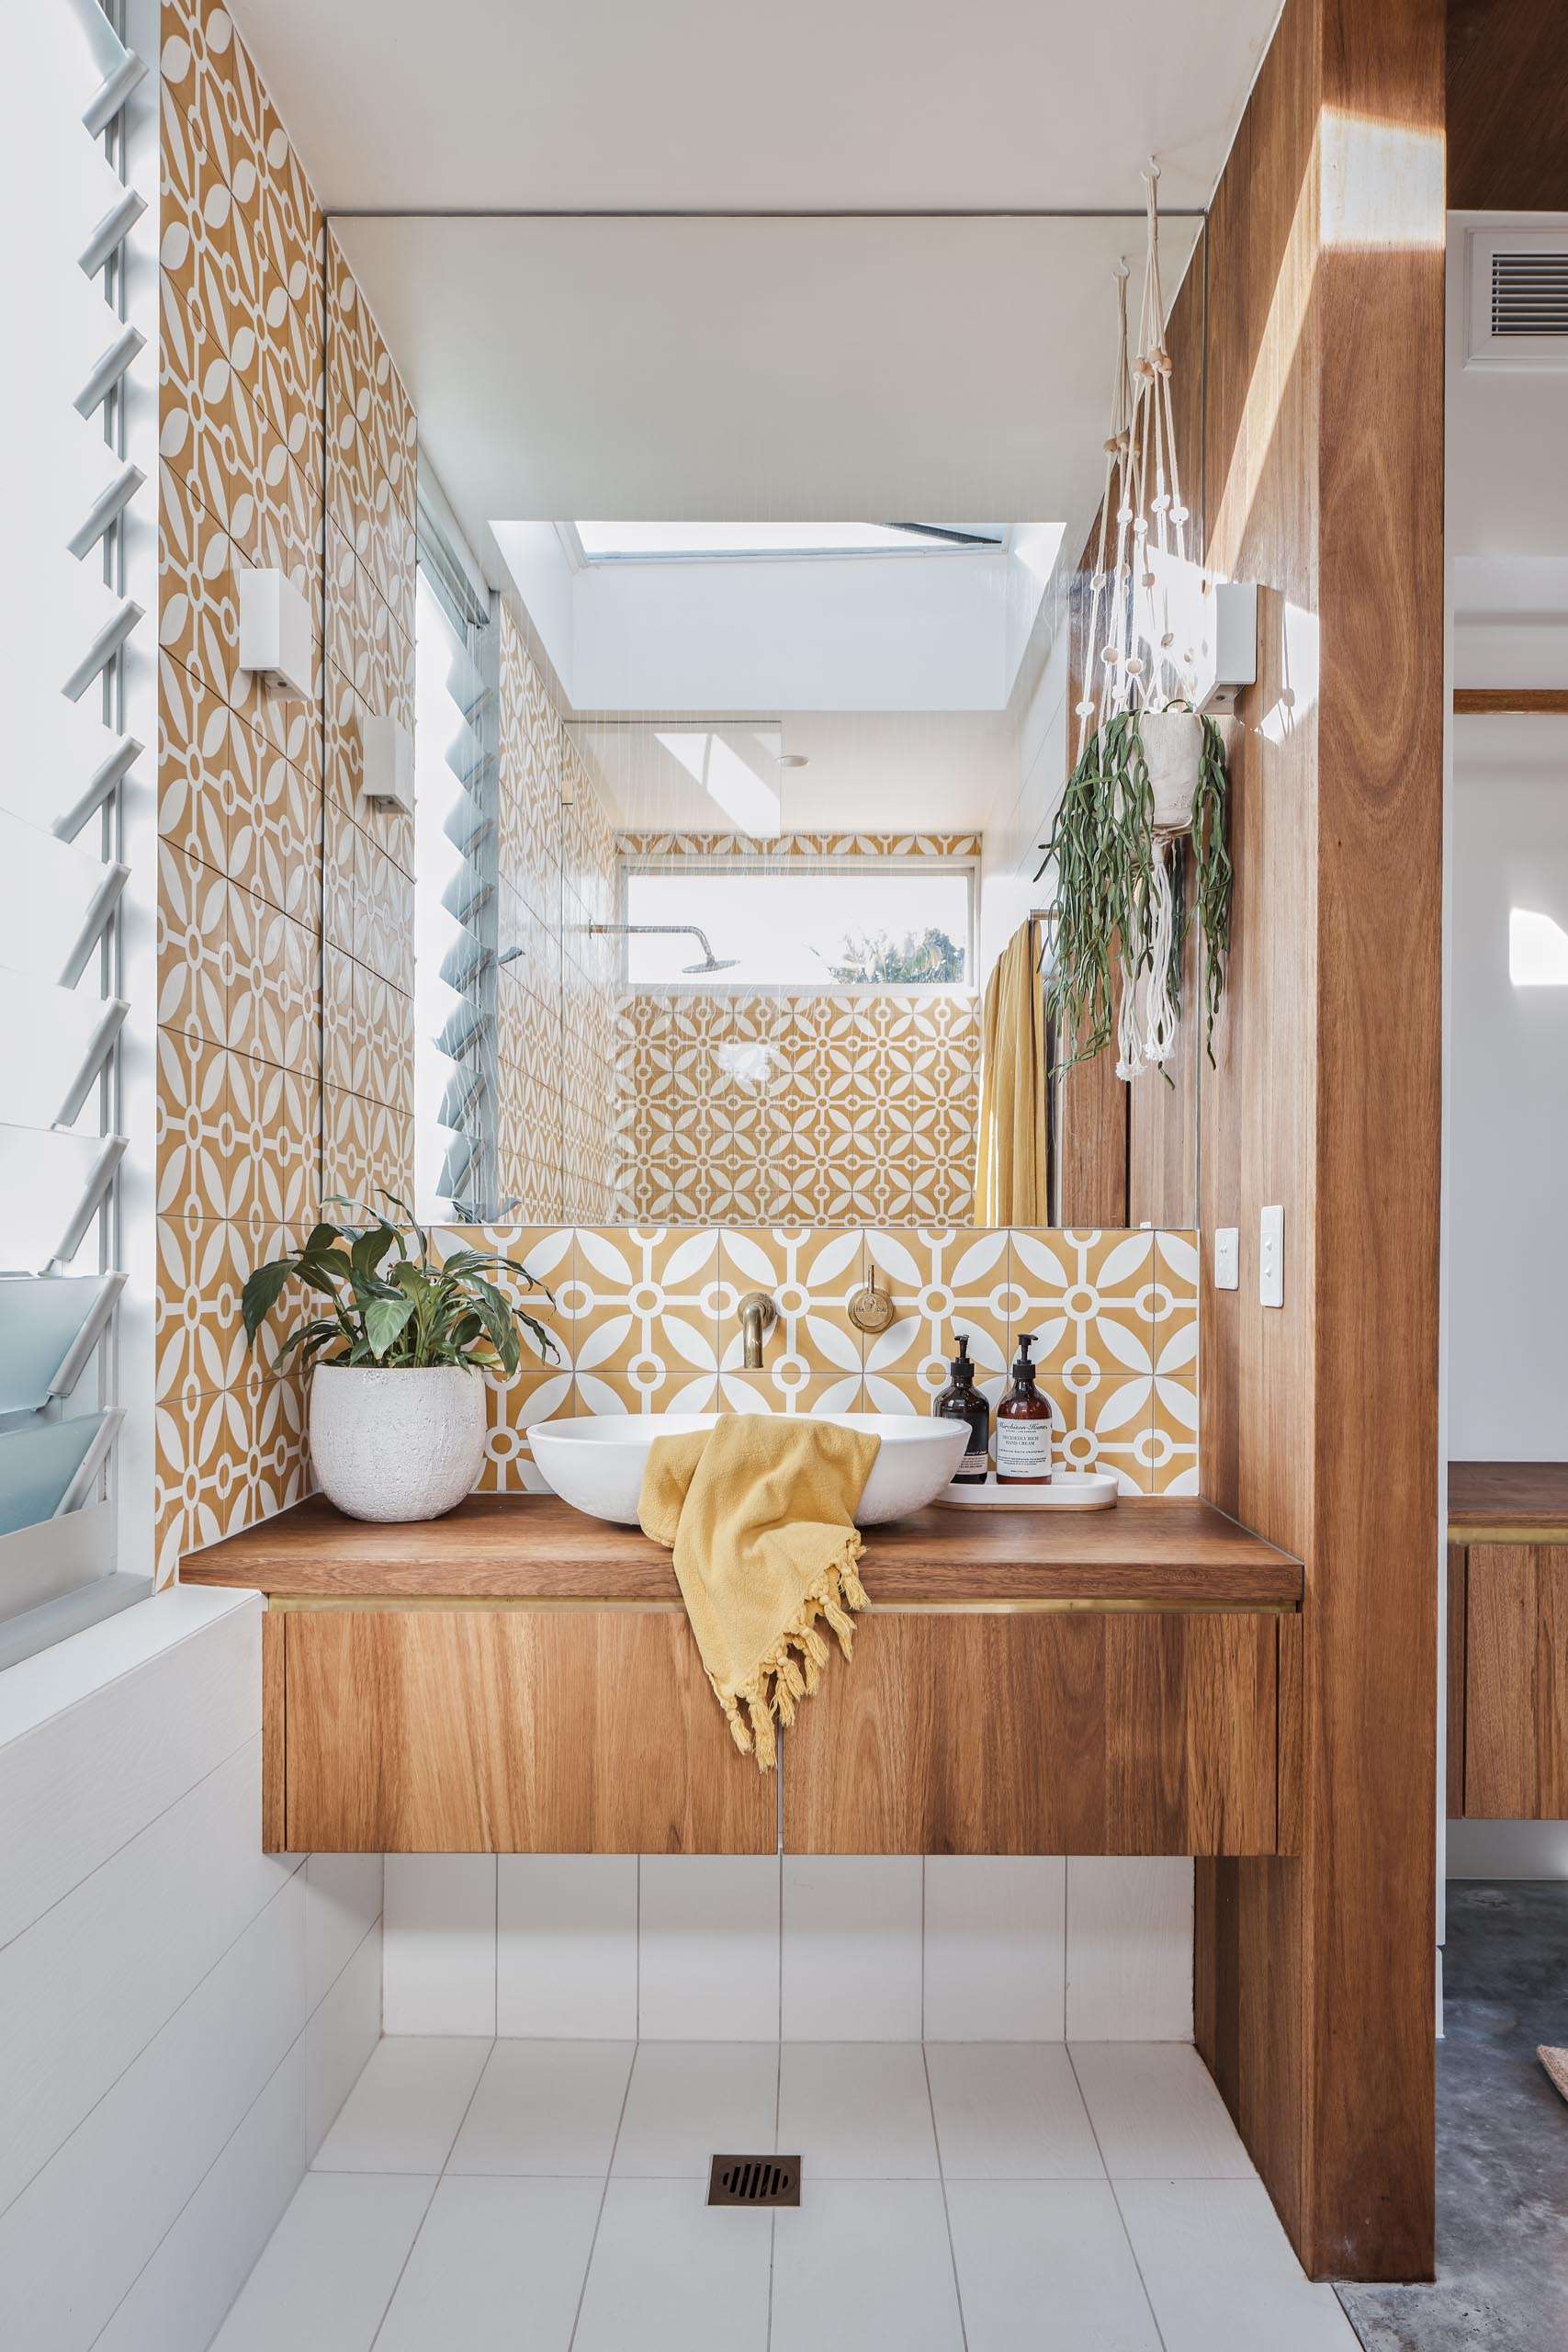 This modern en-suite bathroom includes patterned tiles, a warm wood vanity, and a walk-in shower.